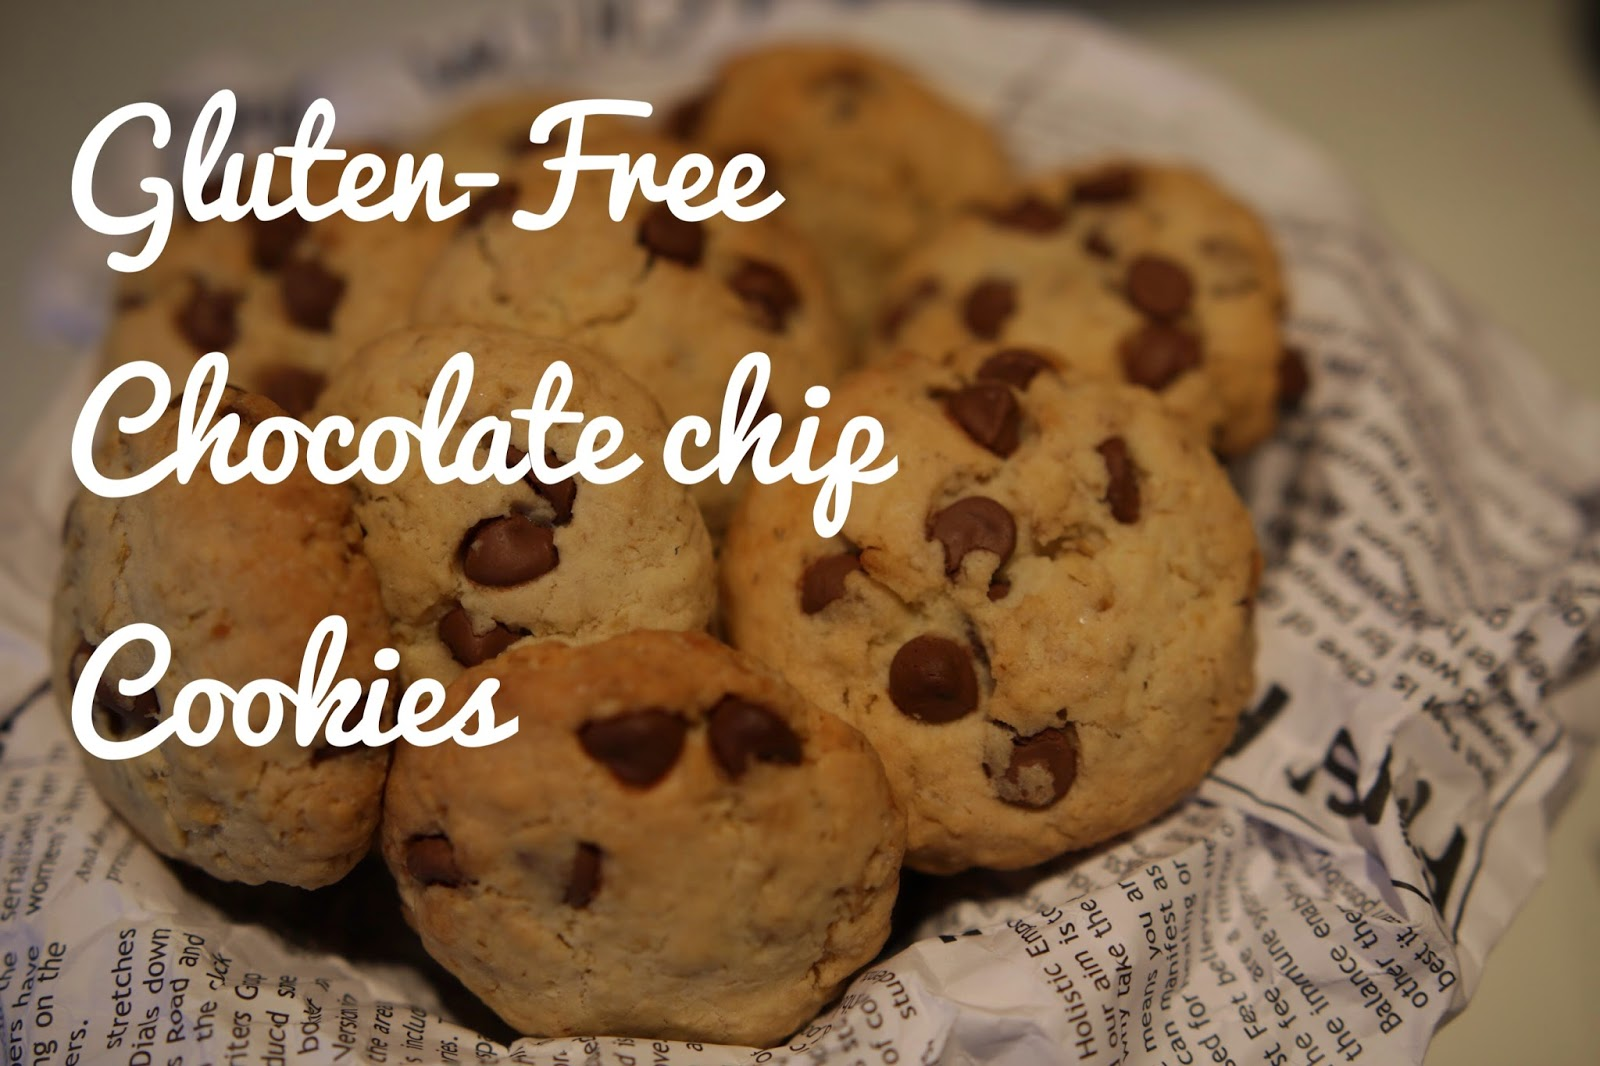 Gluten-free Rice flour Chocolate chip cookies